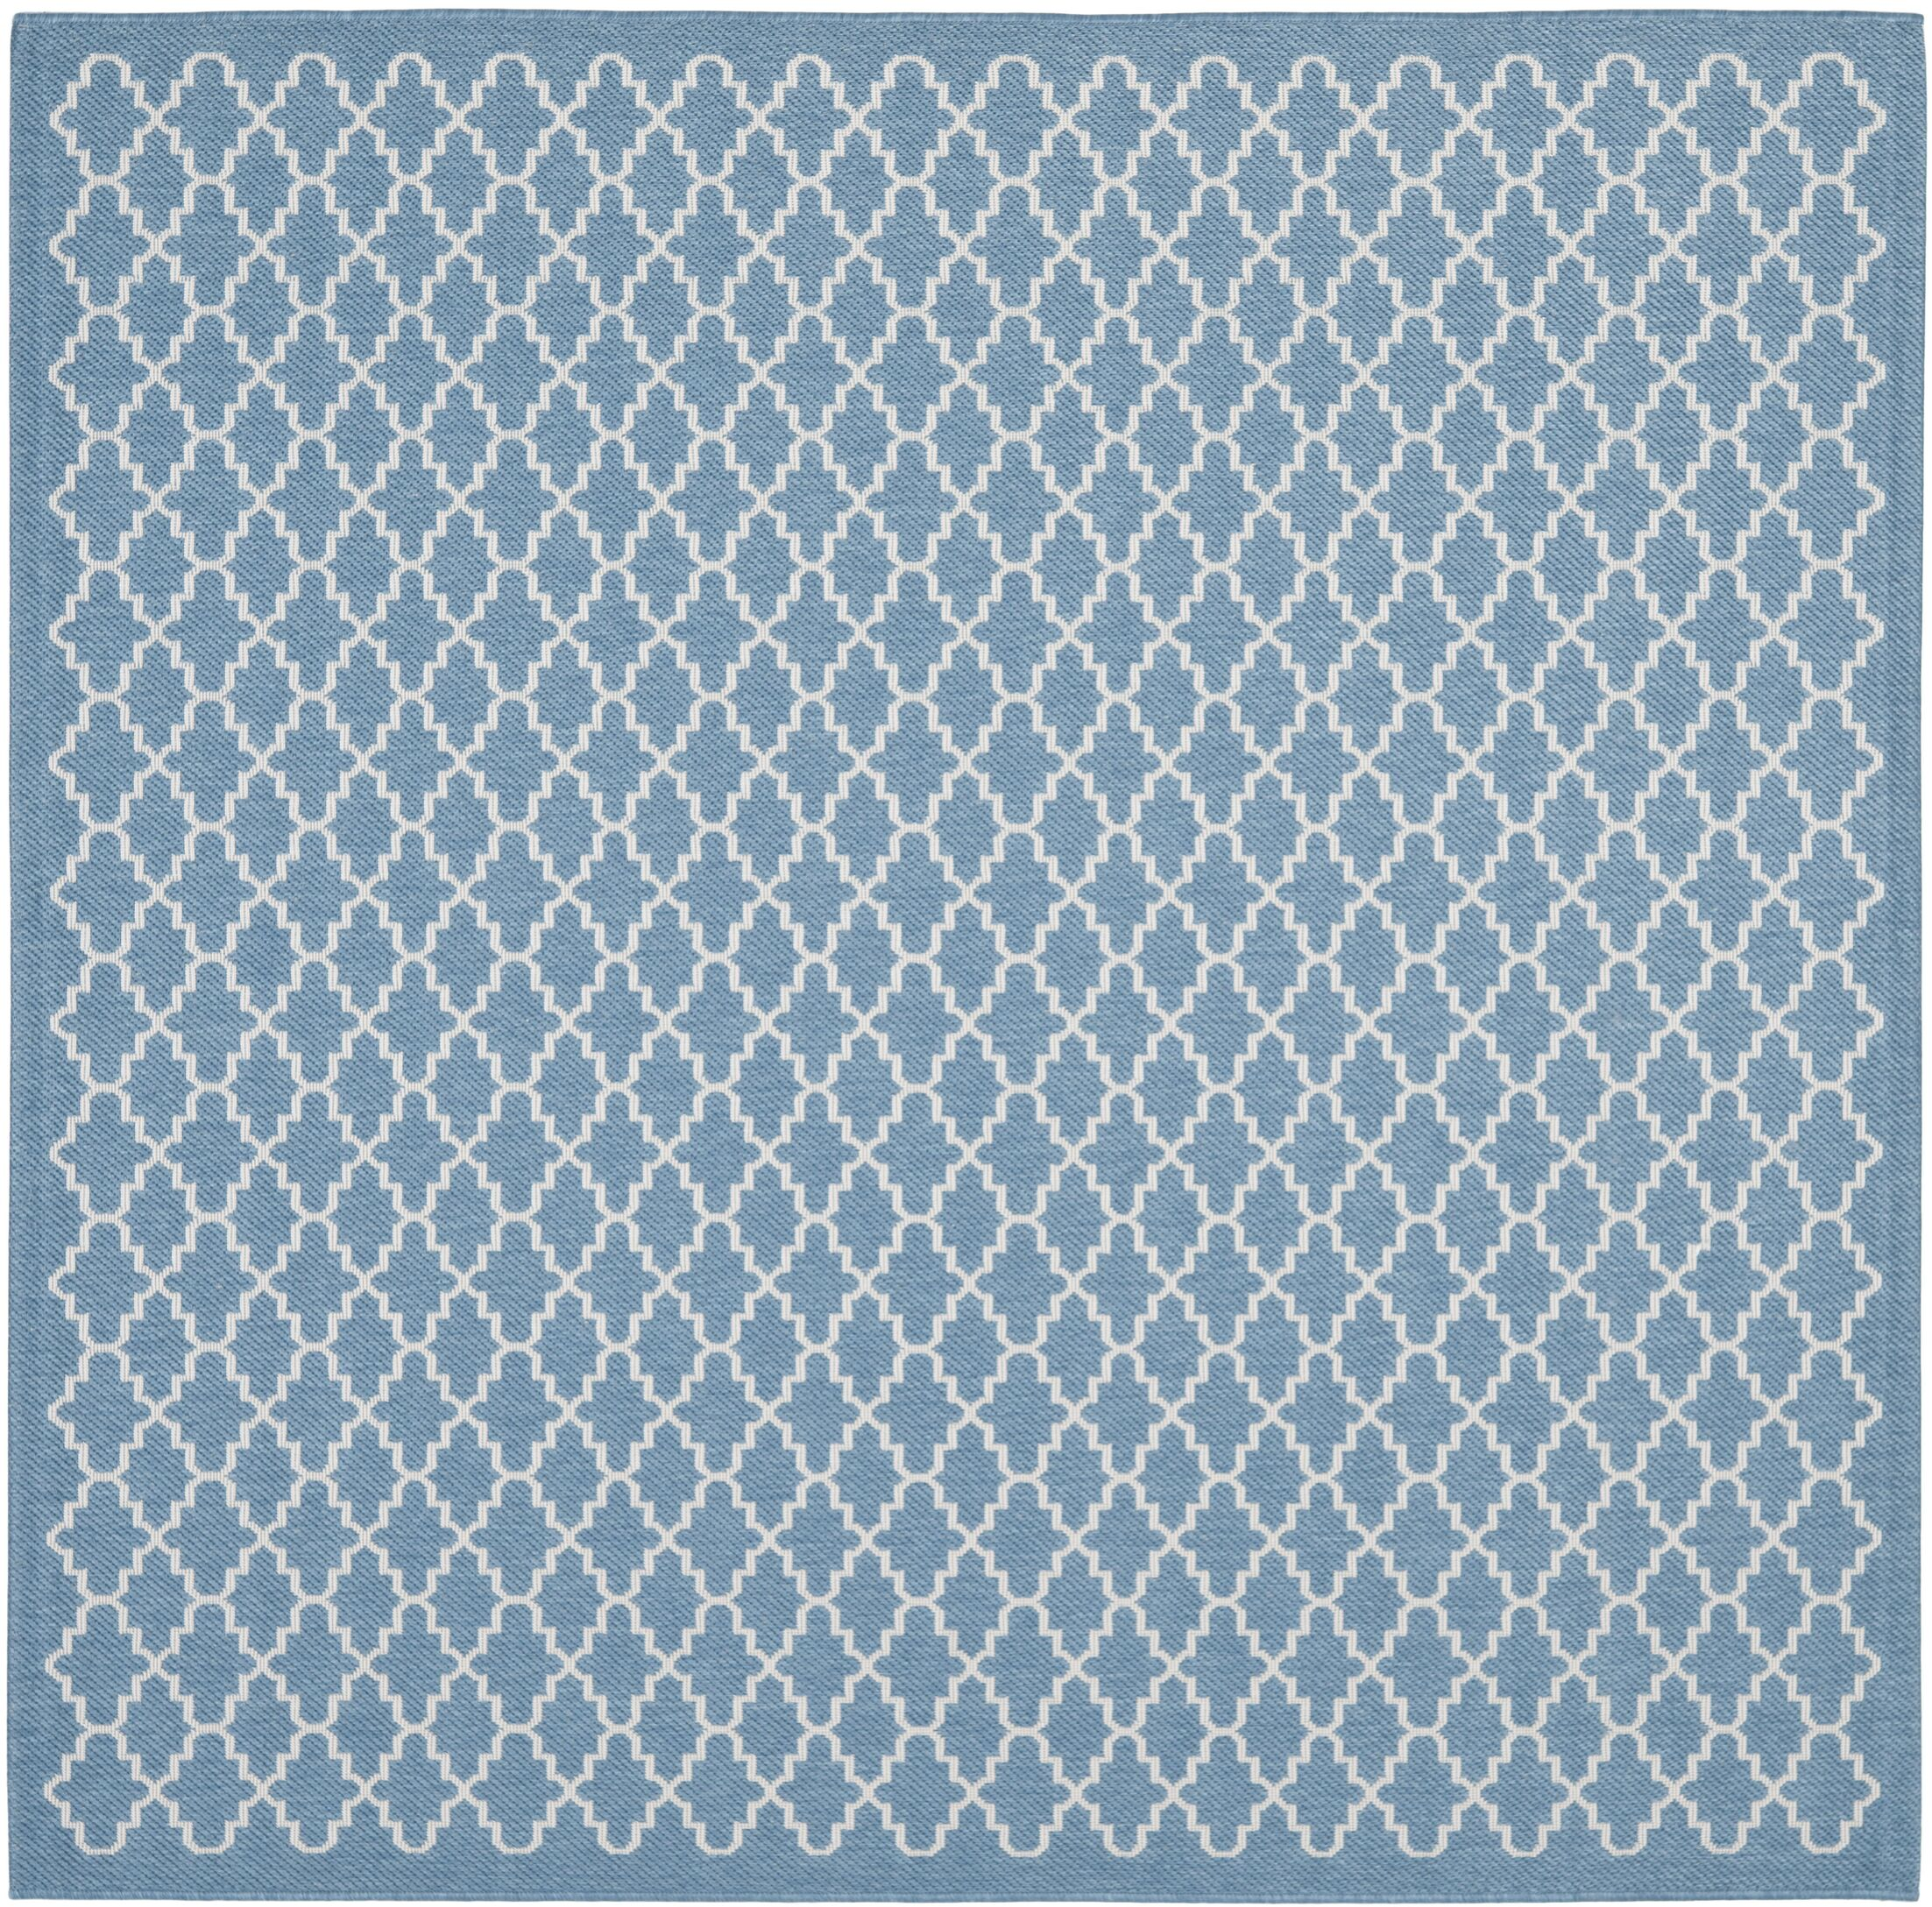 Bacall Blue / Beige Indoor / Outdoor Area Rug Rug Size: Square 6'7